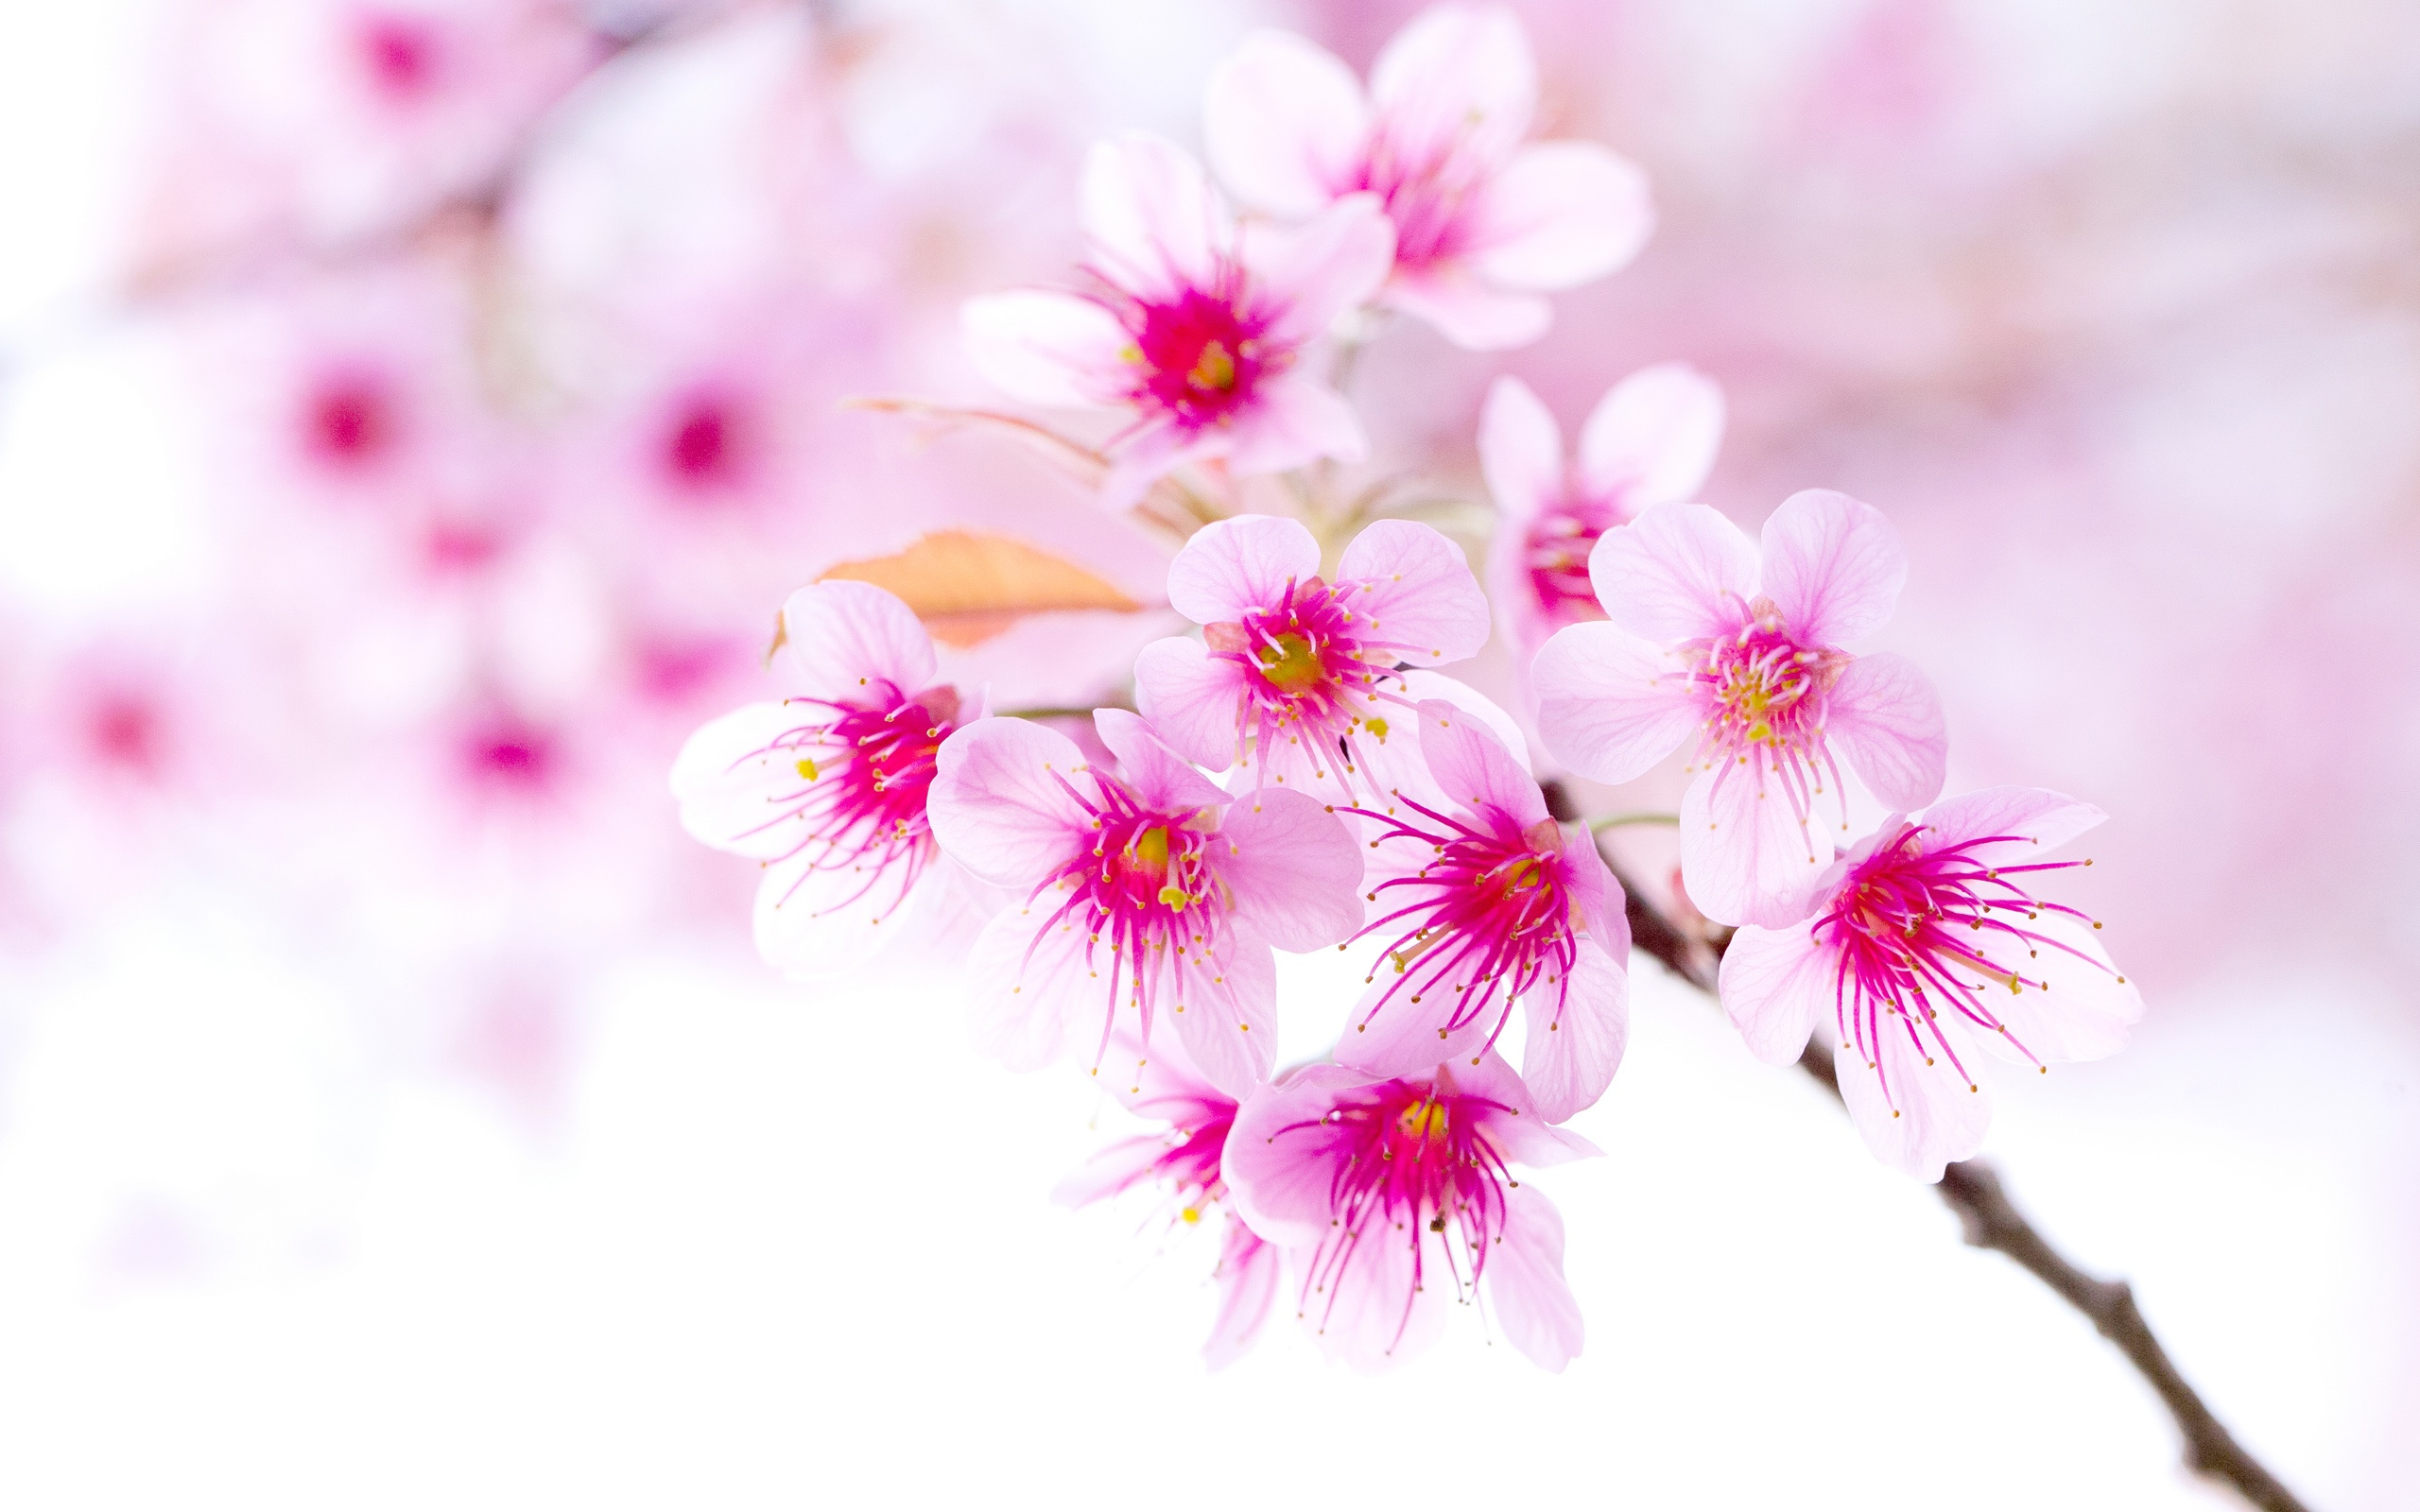 Wallpaper Spring Cherry Blossoms Pink Flowers Close Up 2560x1600 Hd